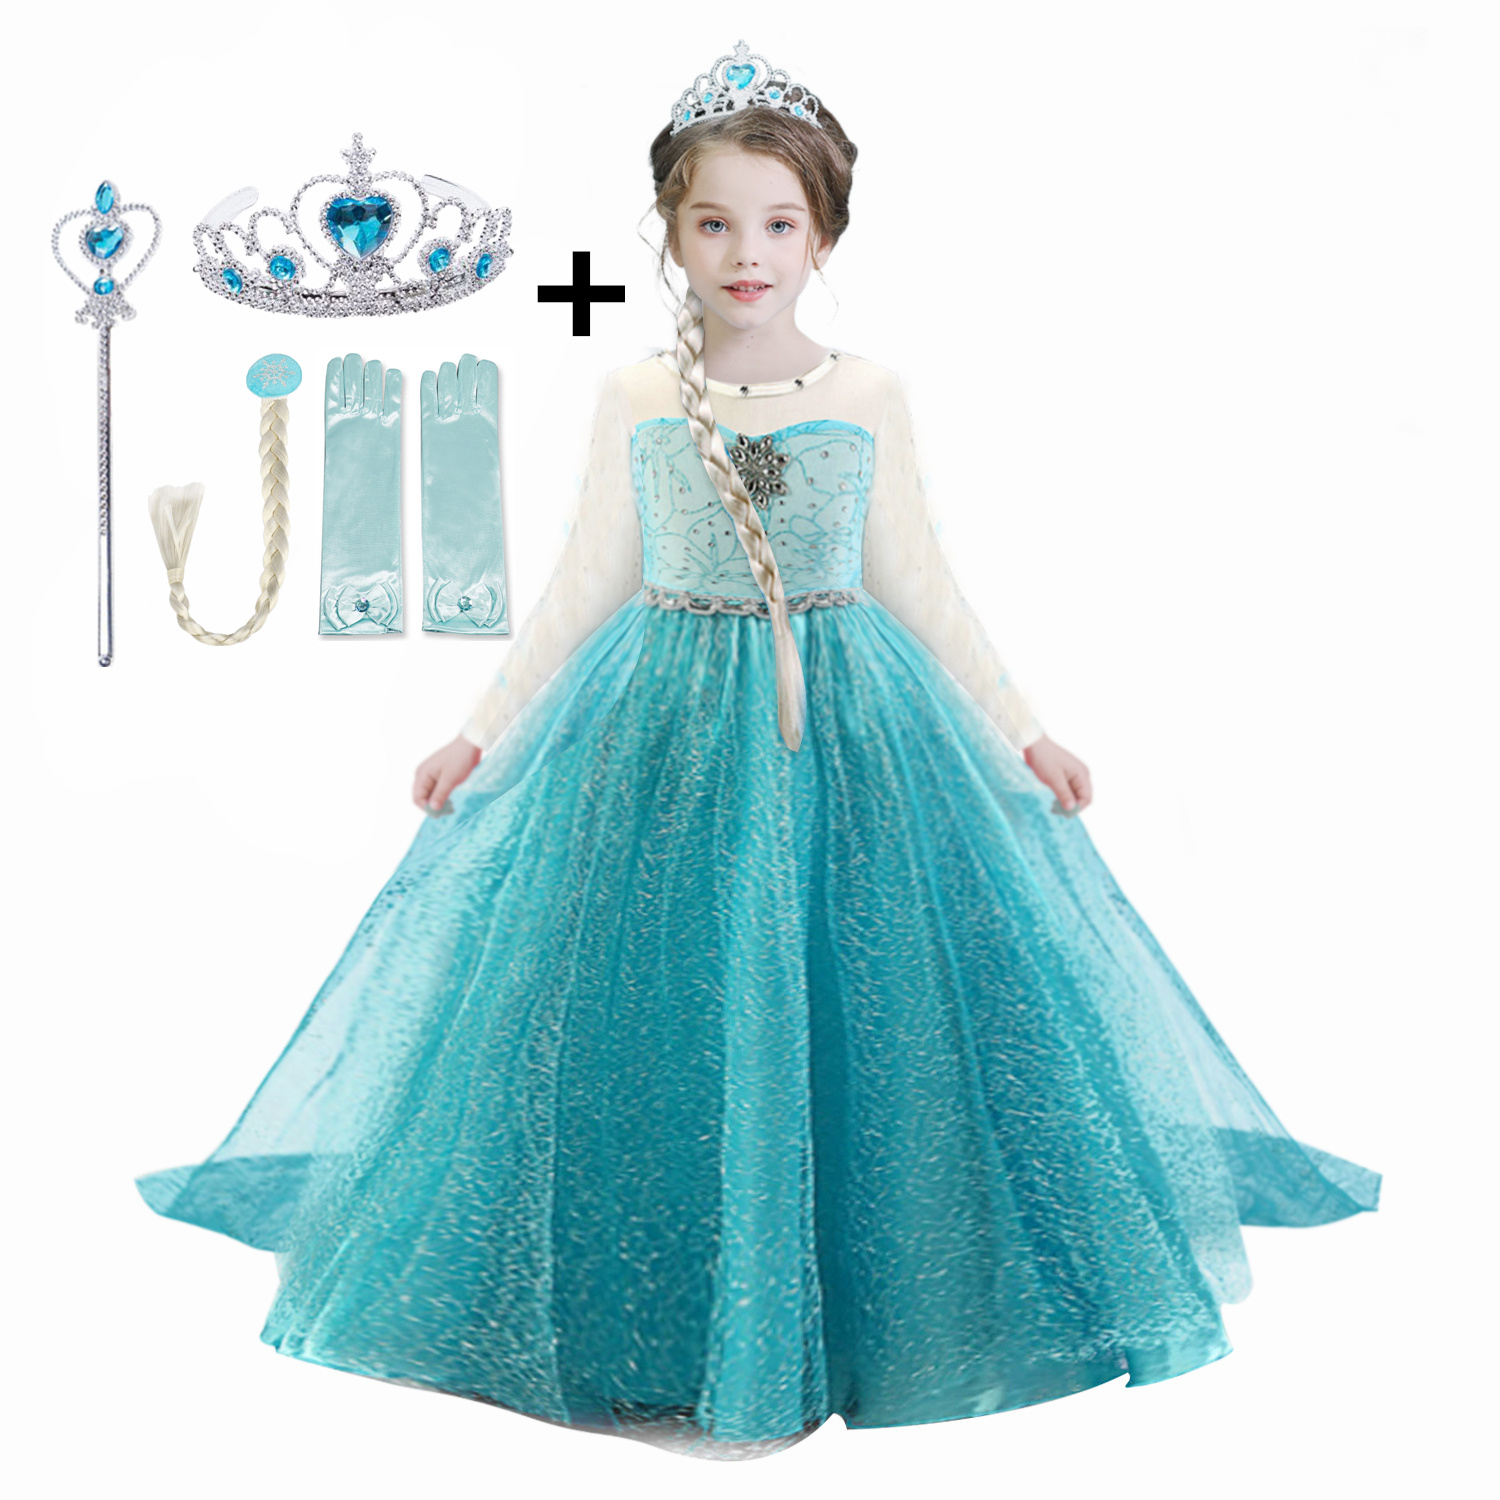 4-10T Girls Elsa Party Princess Dress Baby Girls Summer Elegant Long Sleeve Blue Dresses Birthday Party Fantasy Ball Anna Dress